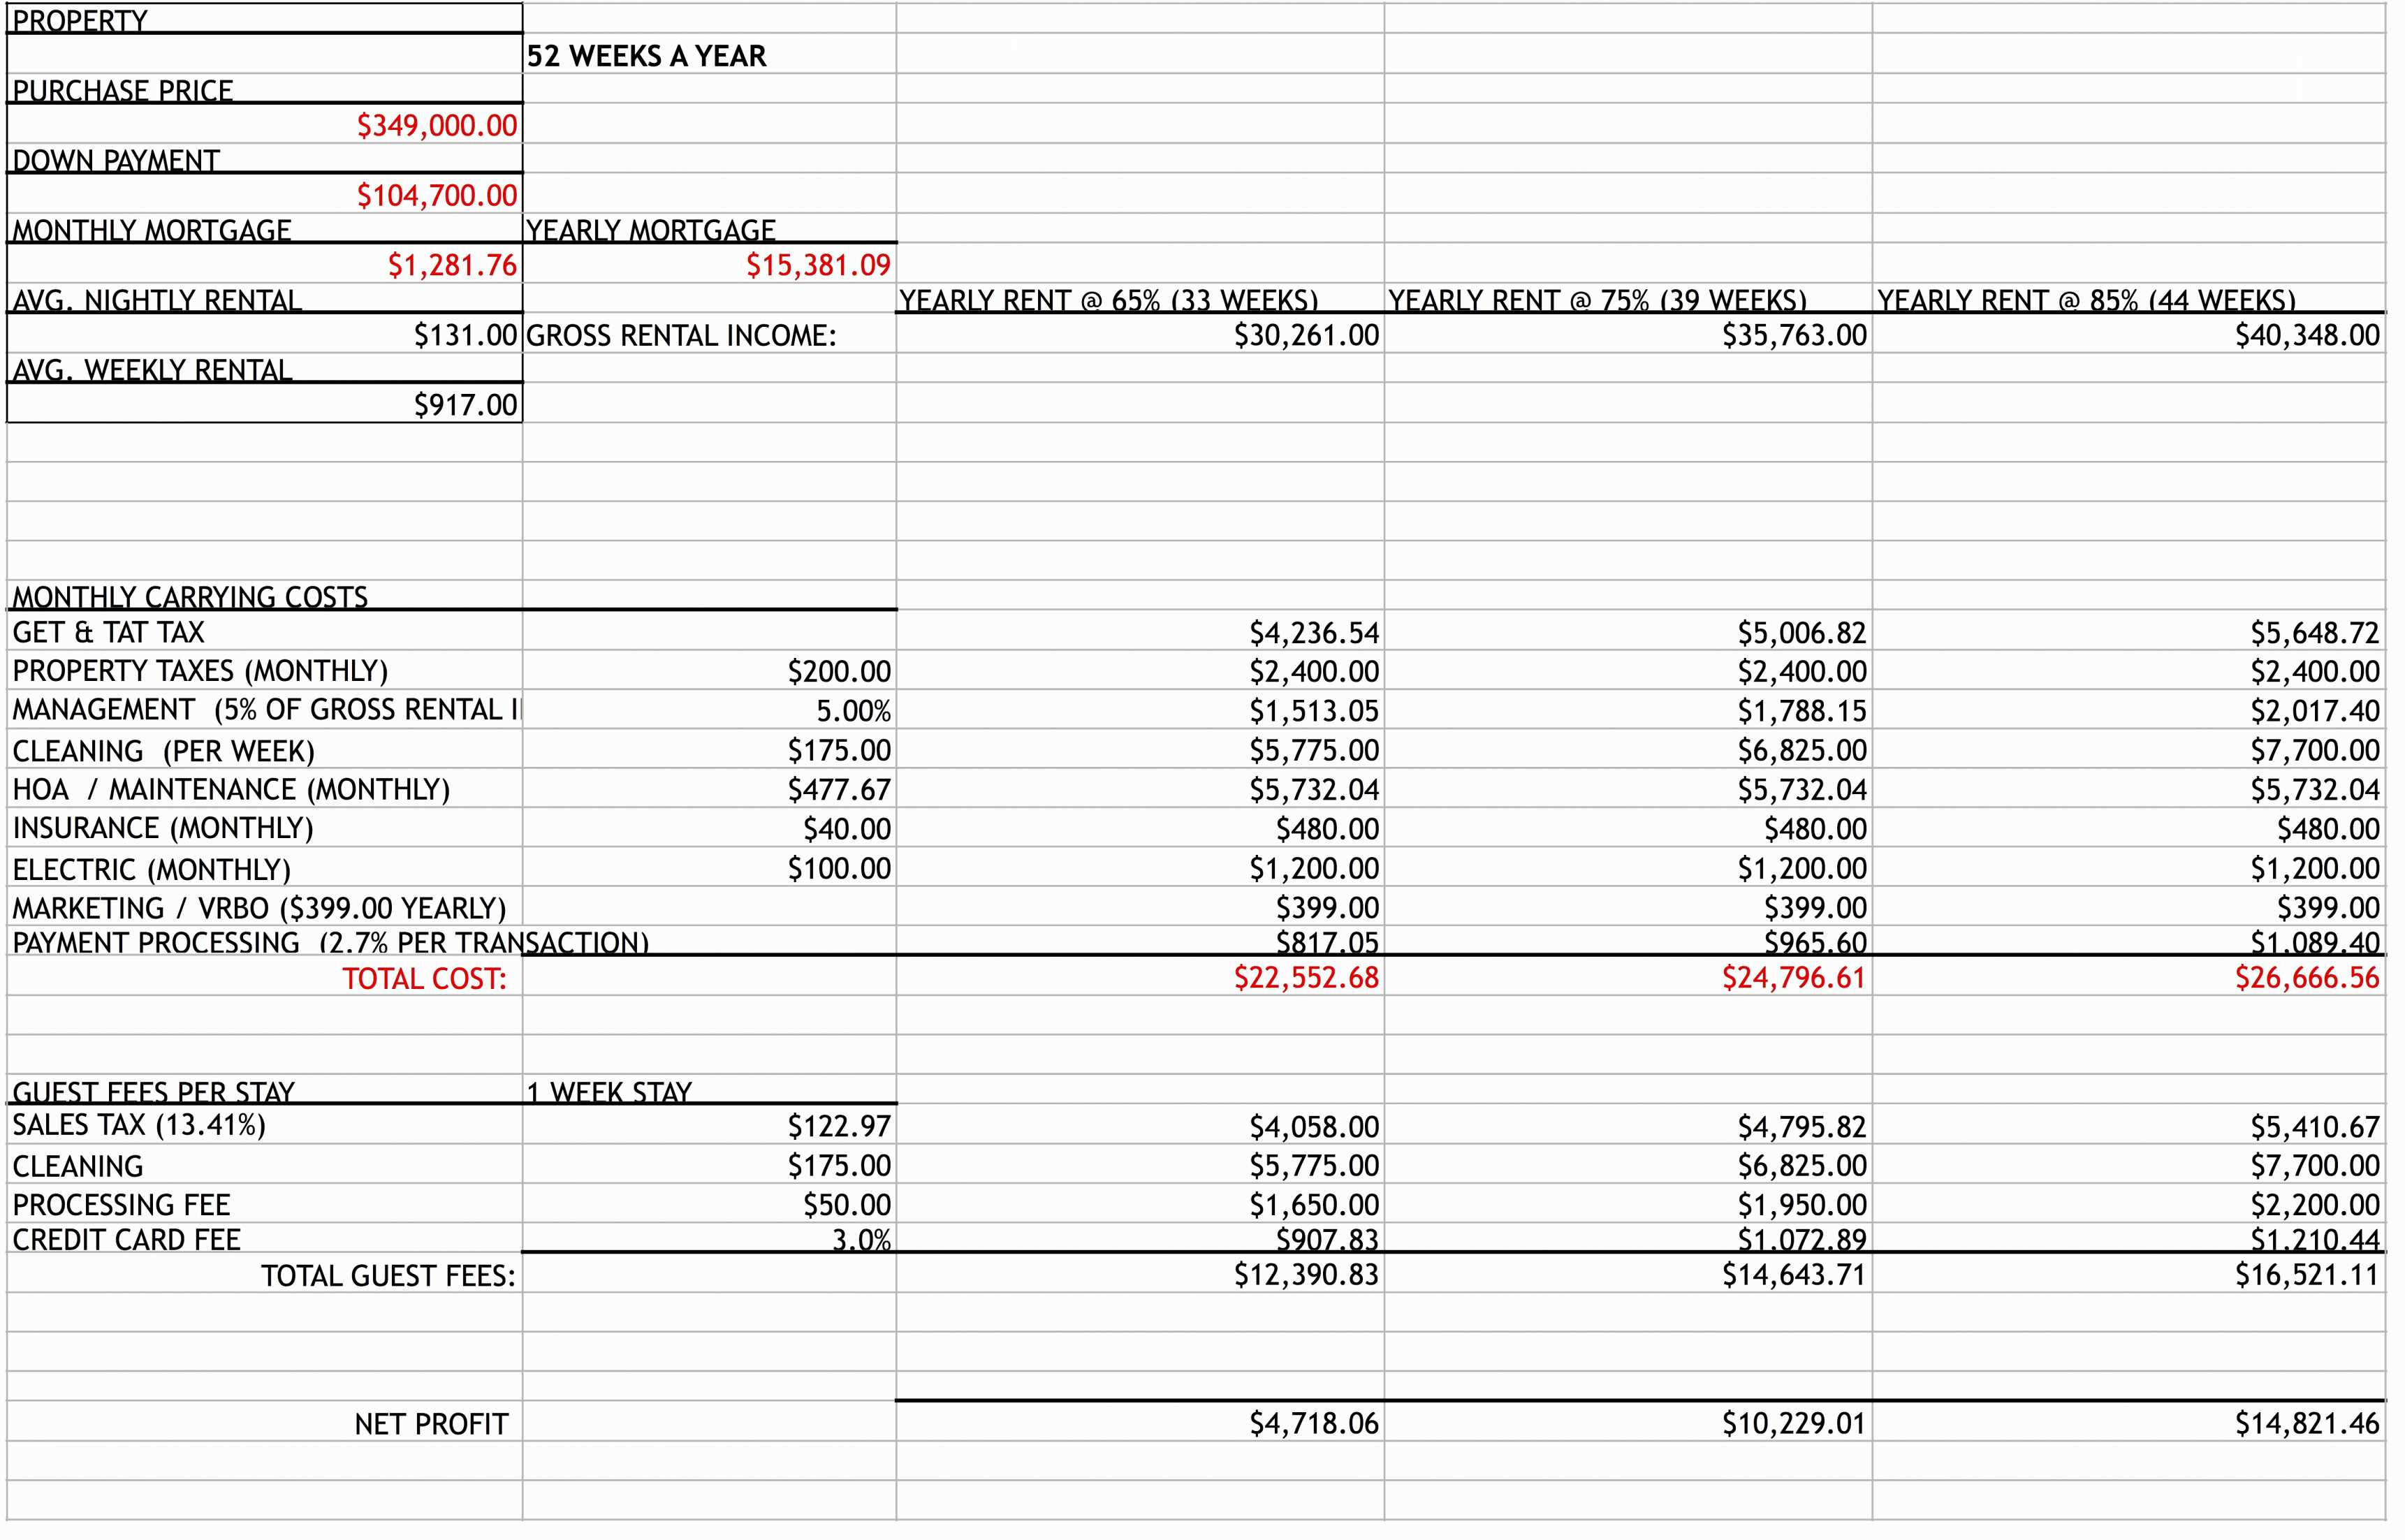 Roi Spreadsheet pertaining to Real Estate Investment Spreadsheet Templates Free With Roi Plus